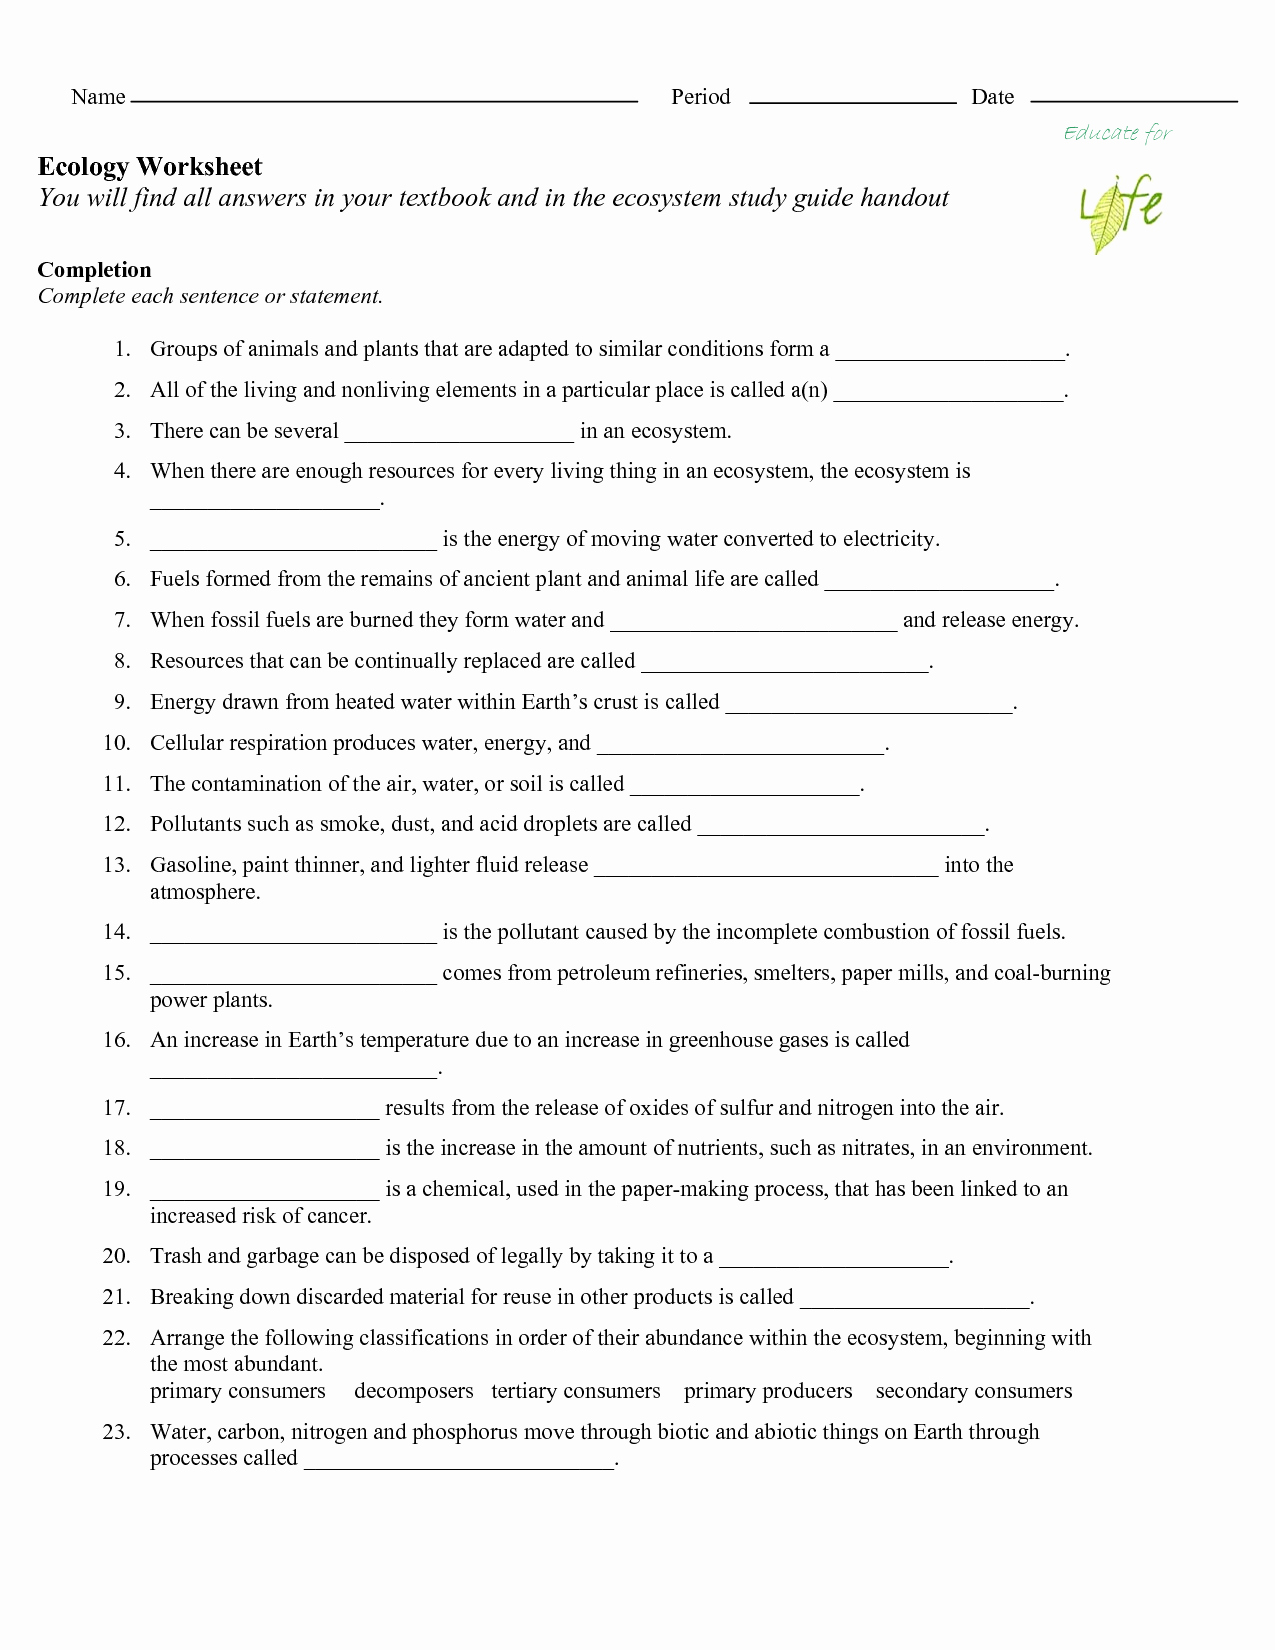 Ecological Succession Worksheet High School Awesome 17 Best Of Nitrogen Cycle Worksheet Middle School